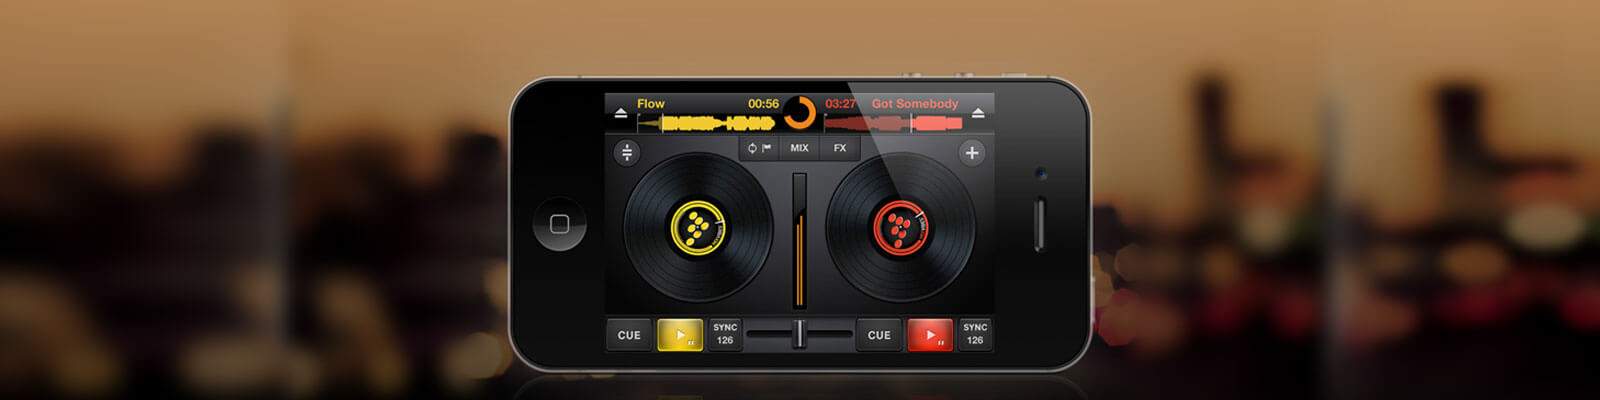 cross dj app development